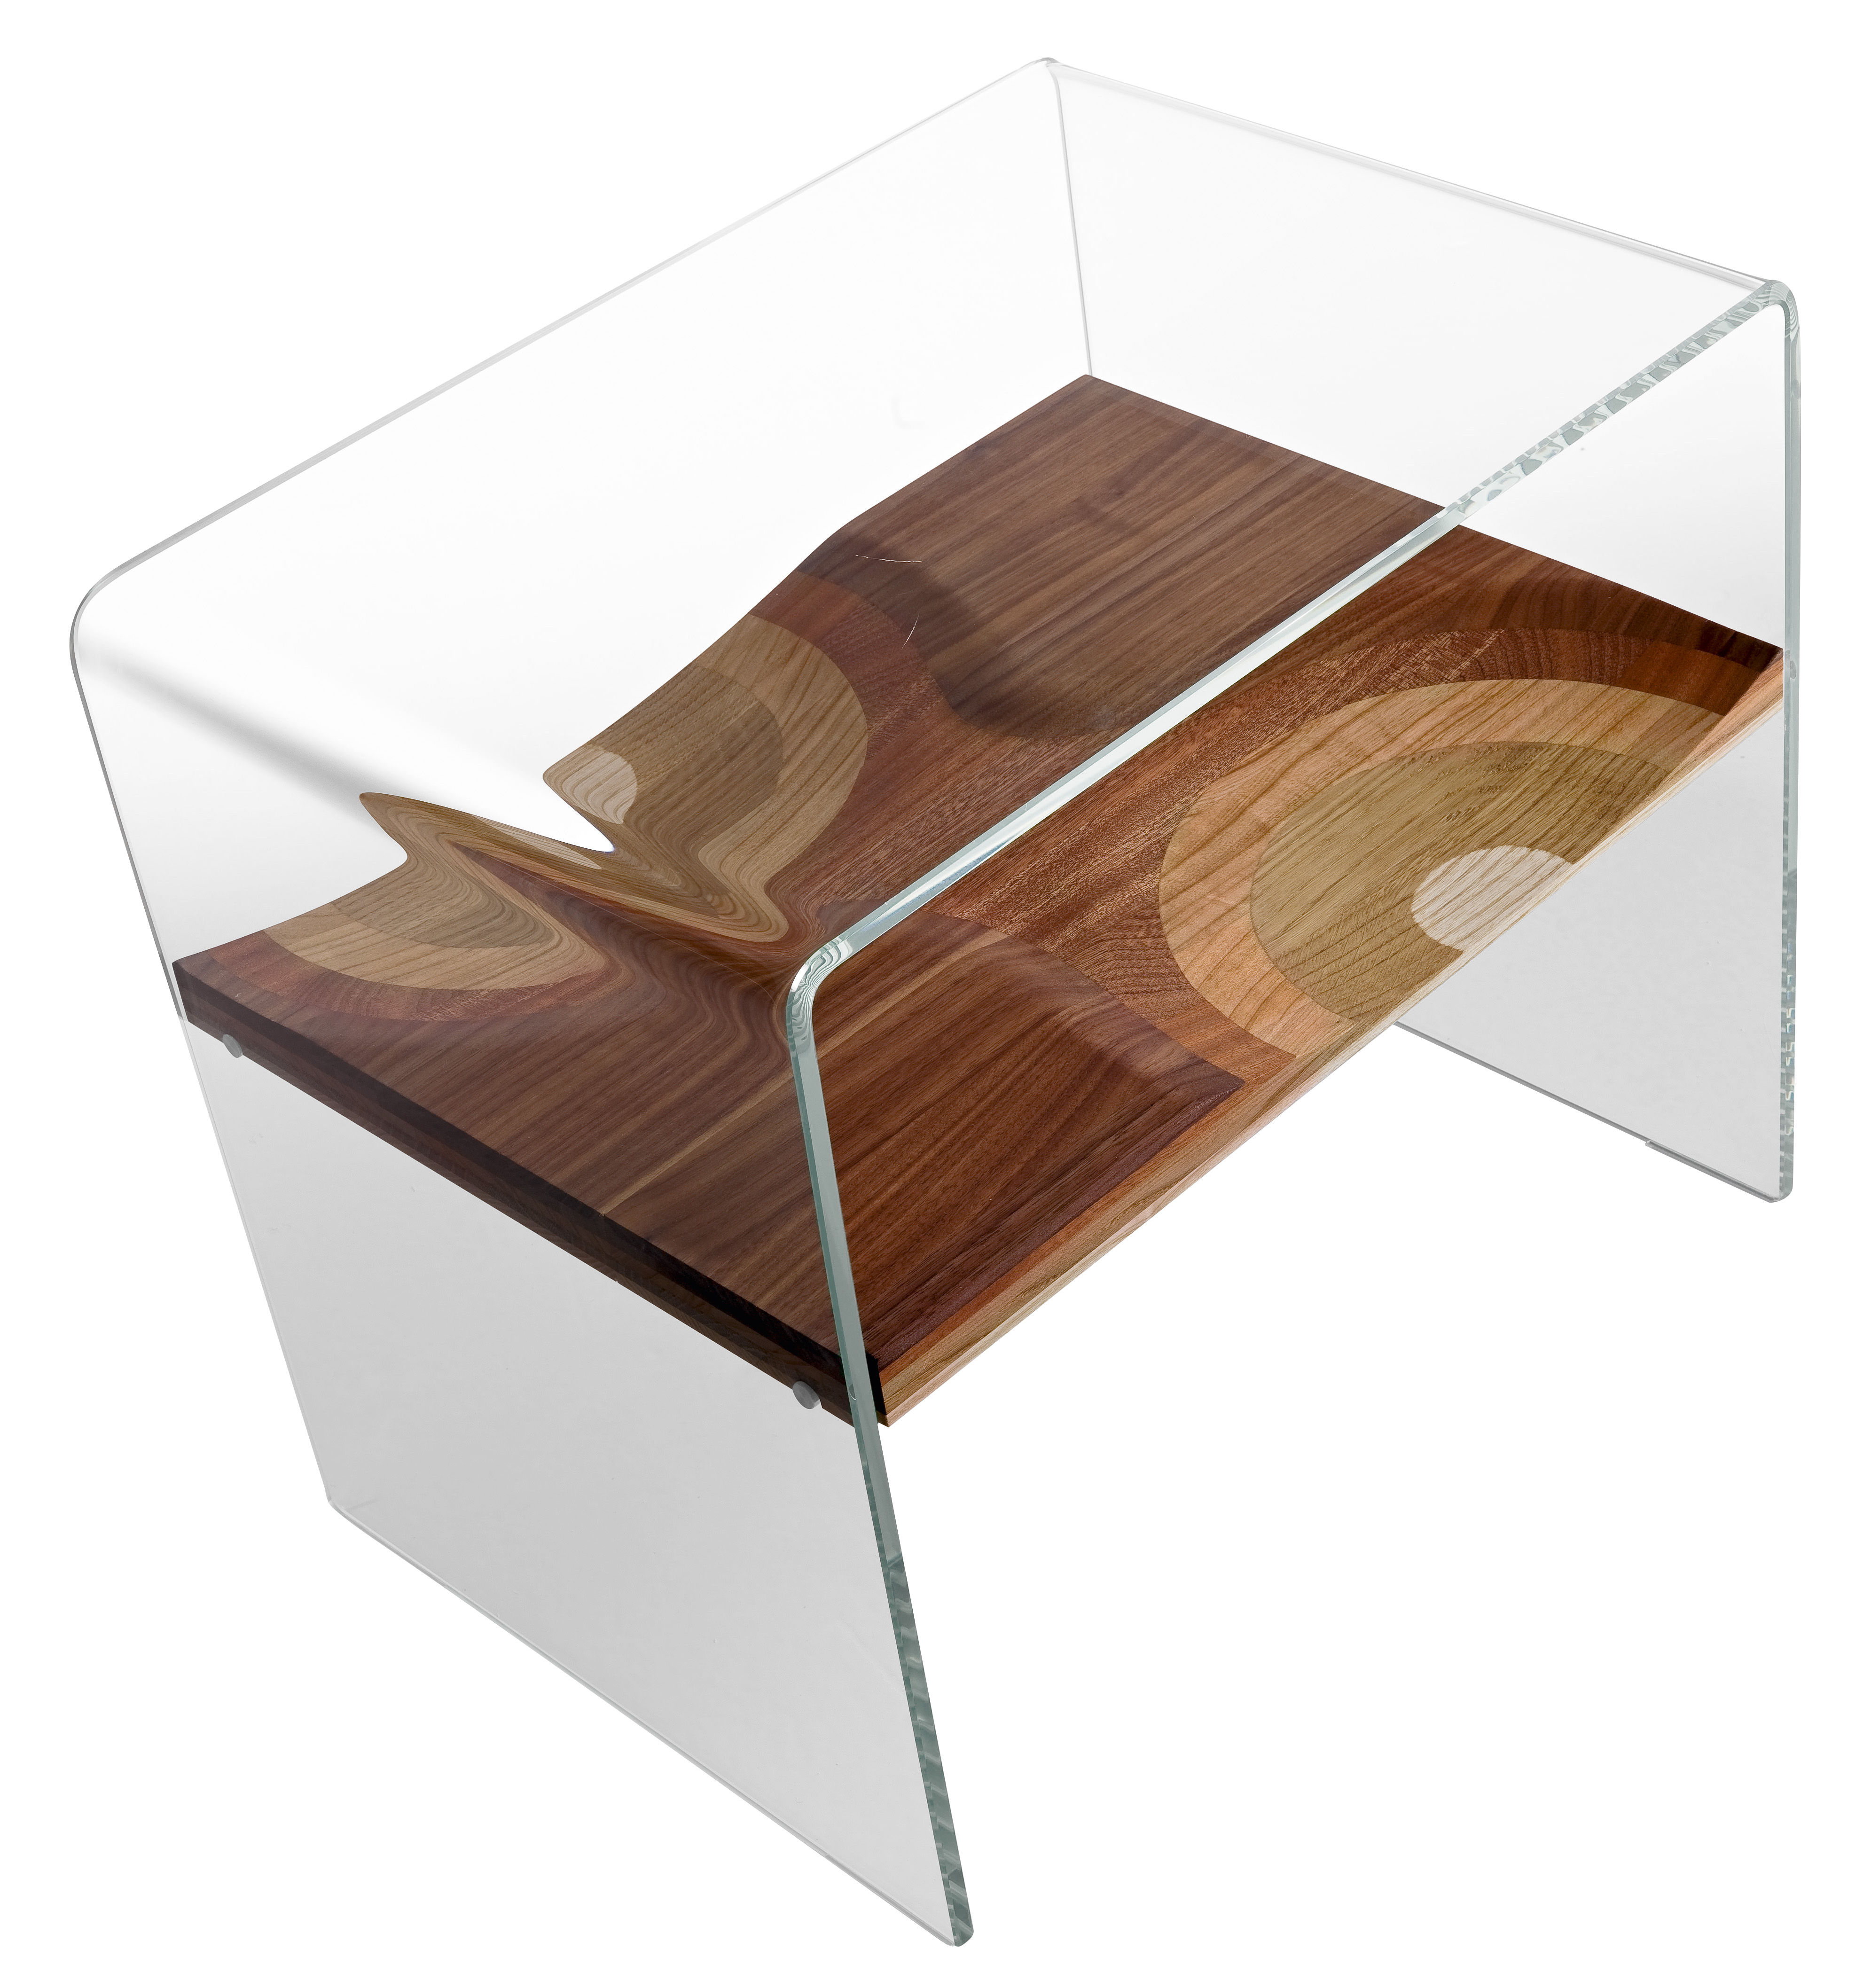 table de chevet bifronte transparent horm. Black Bedroom Furniture Sets. Home Design Ideas